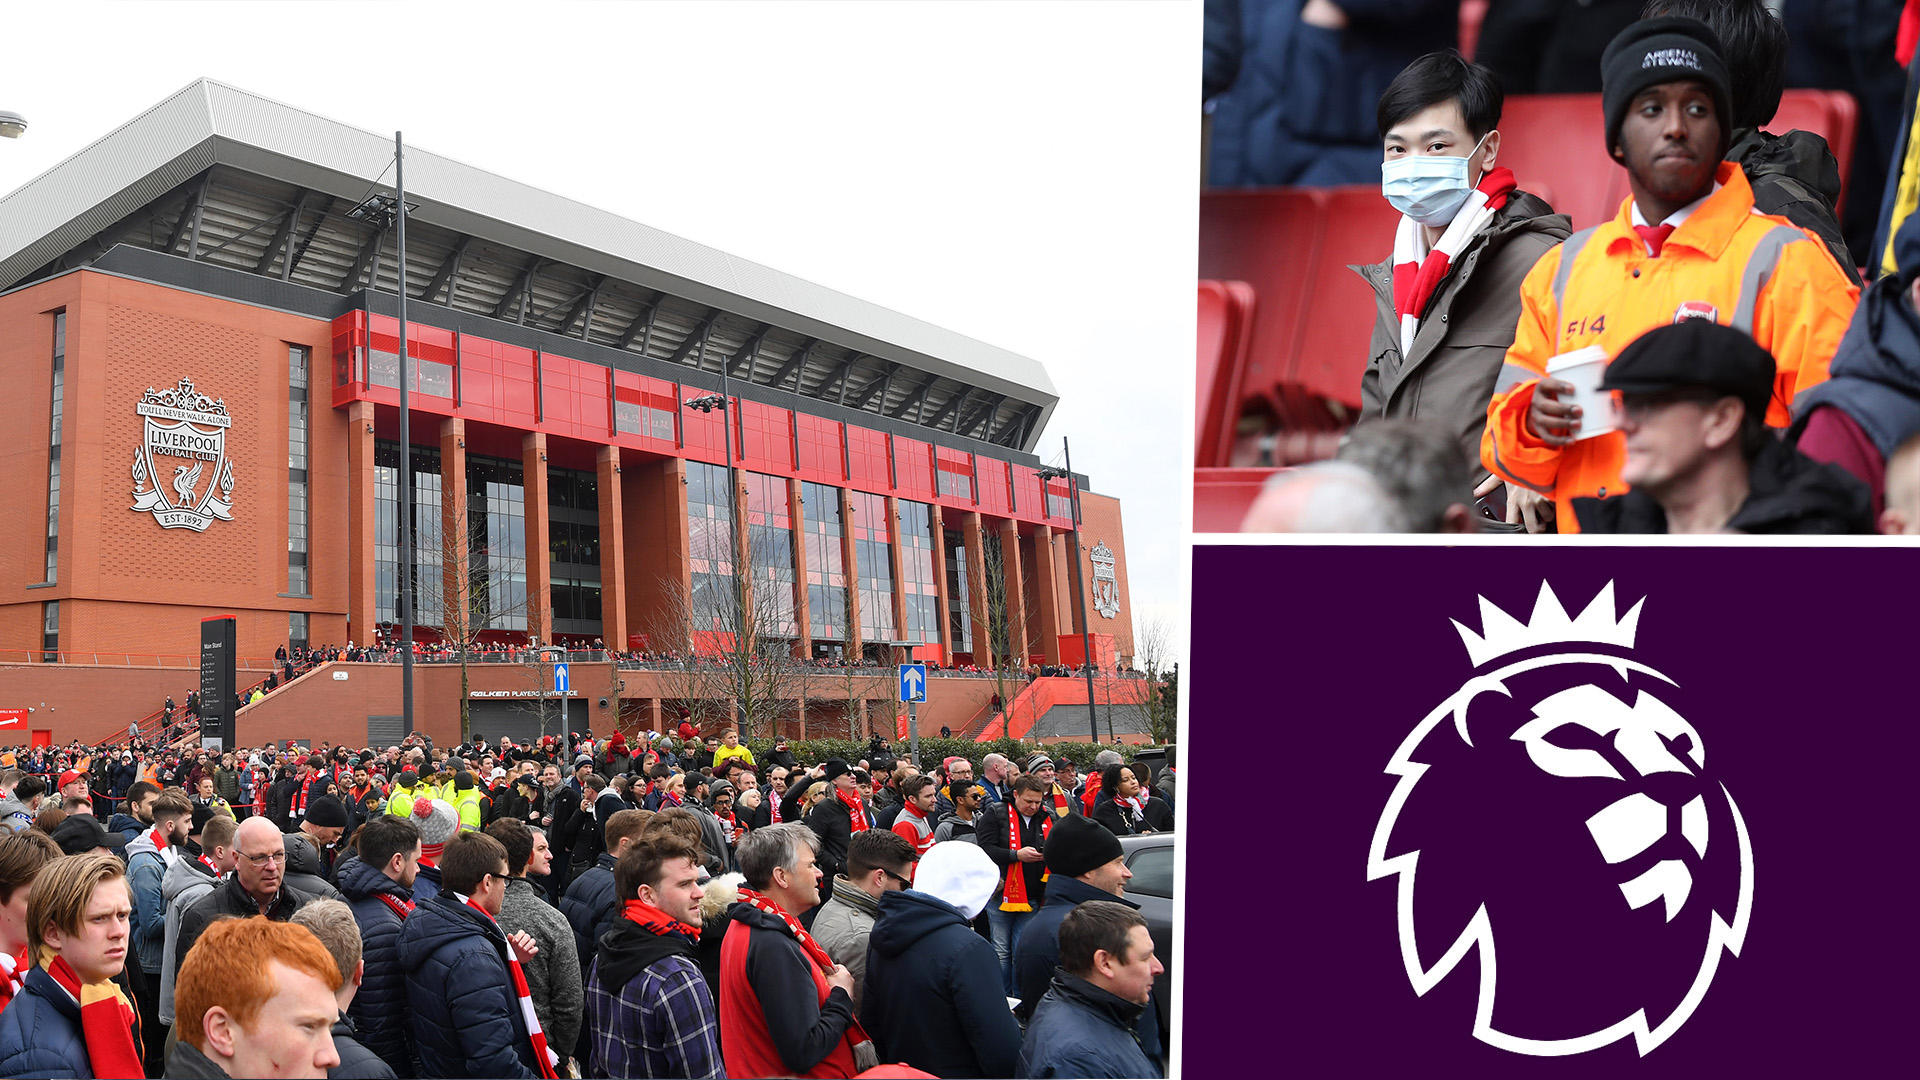 Only half of EPL clubs allowed fans when restrictions eased